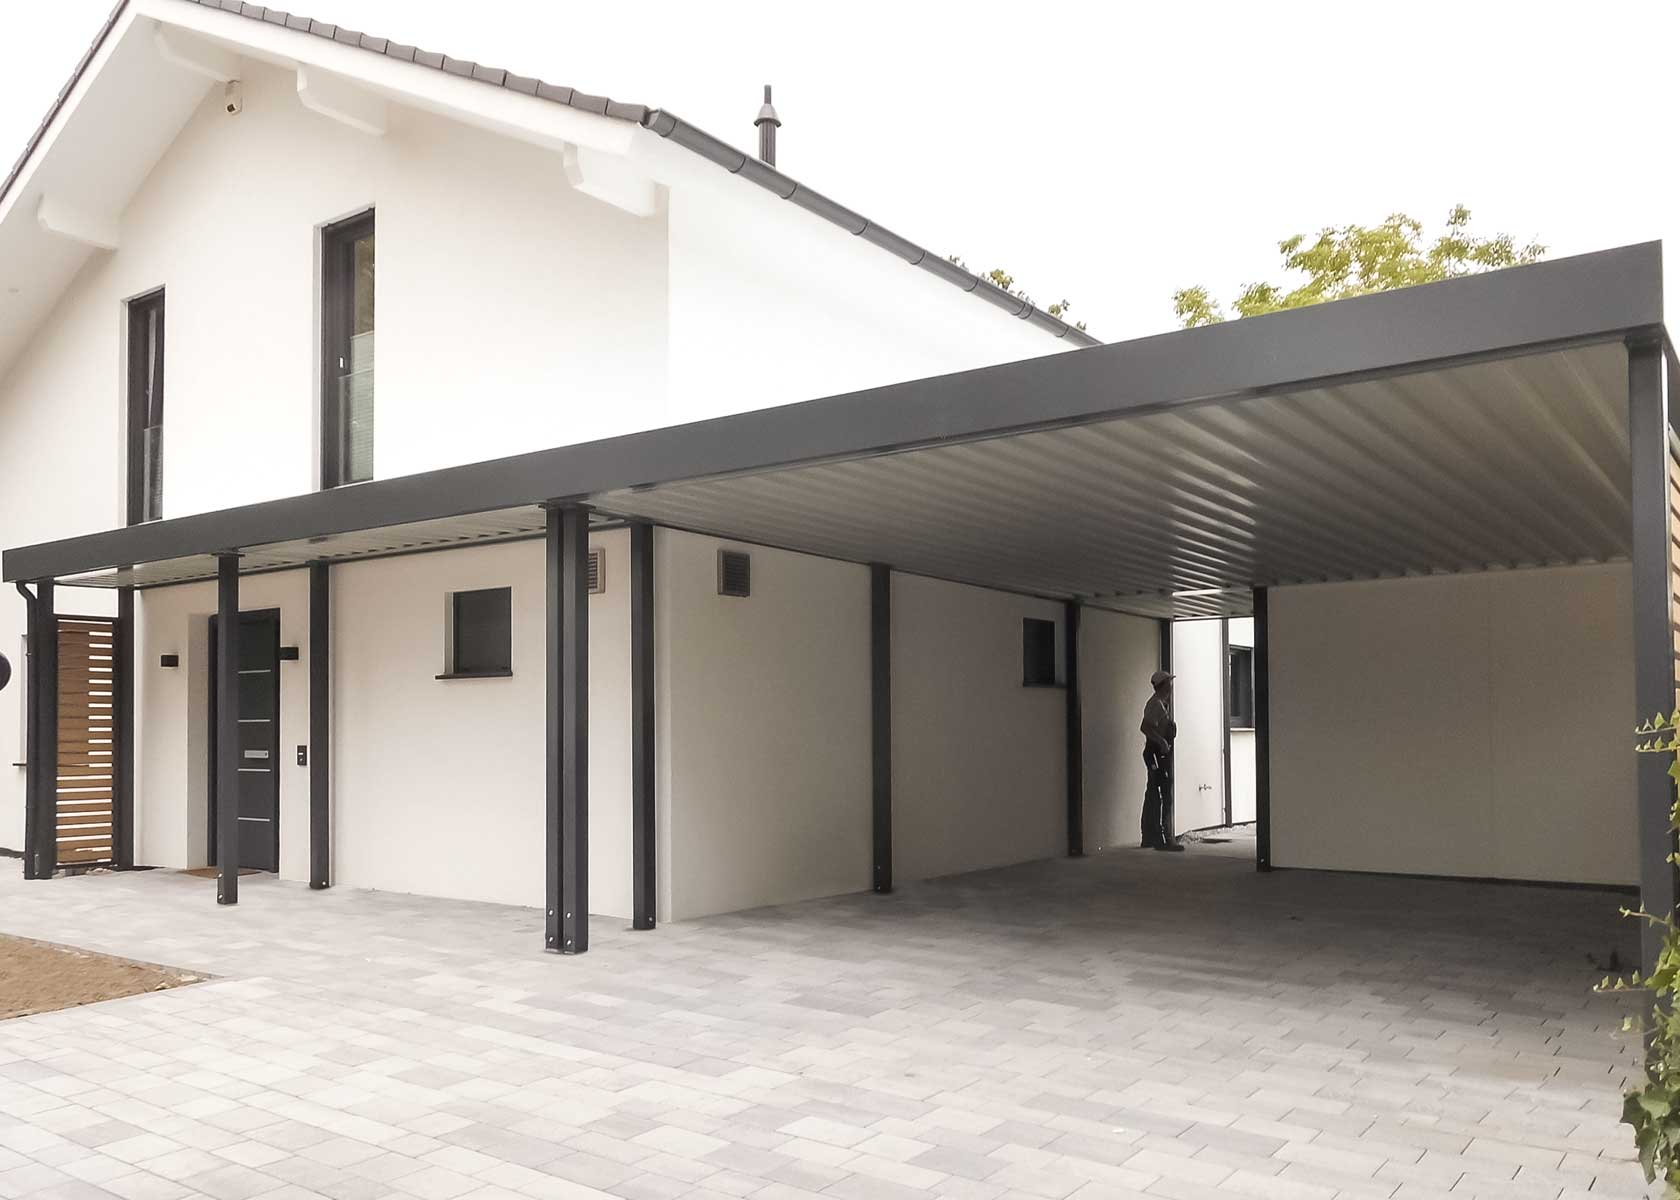 carport aus lippe carport in holz alu stahl carport bausatz. Black Bedroom Furniture Sets. Home Design Ideas